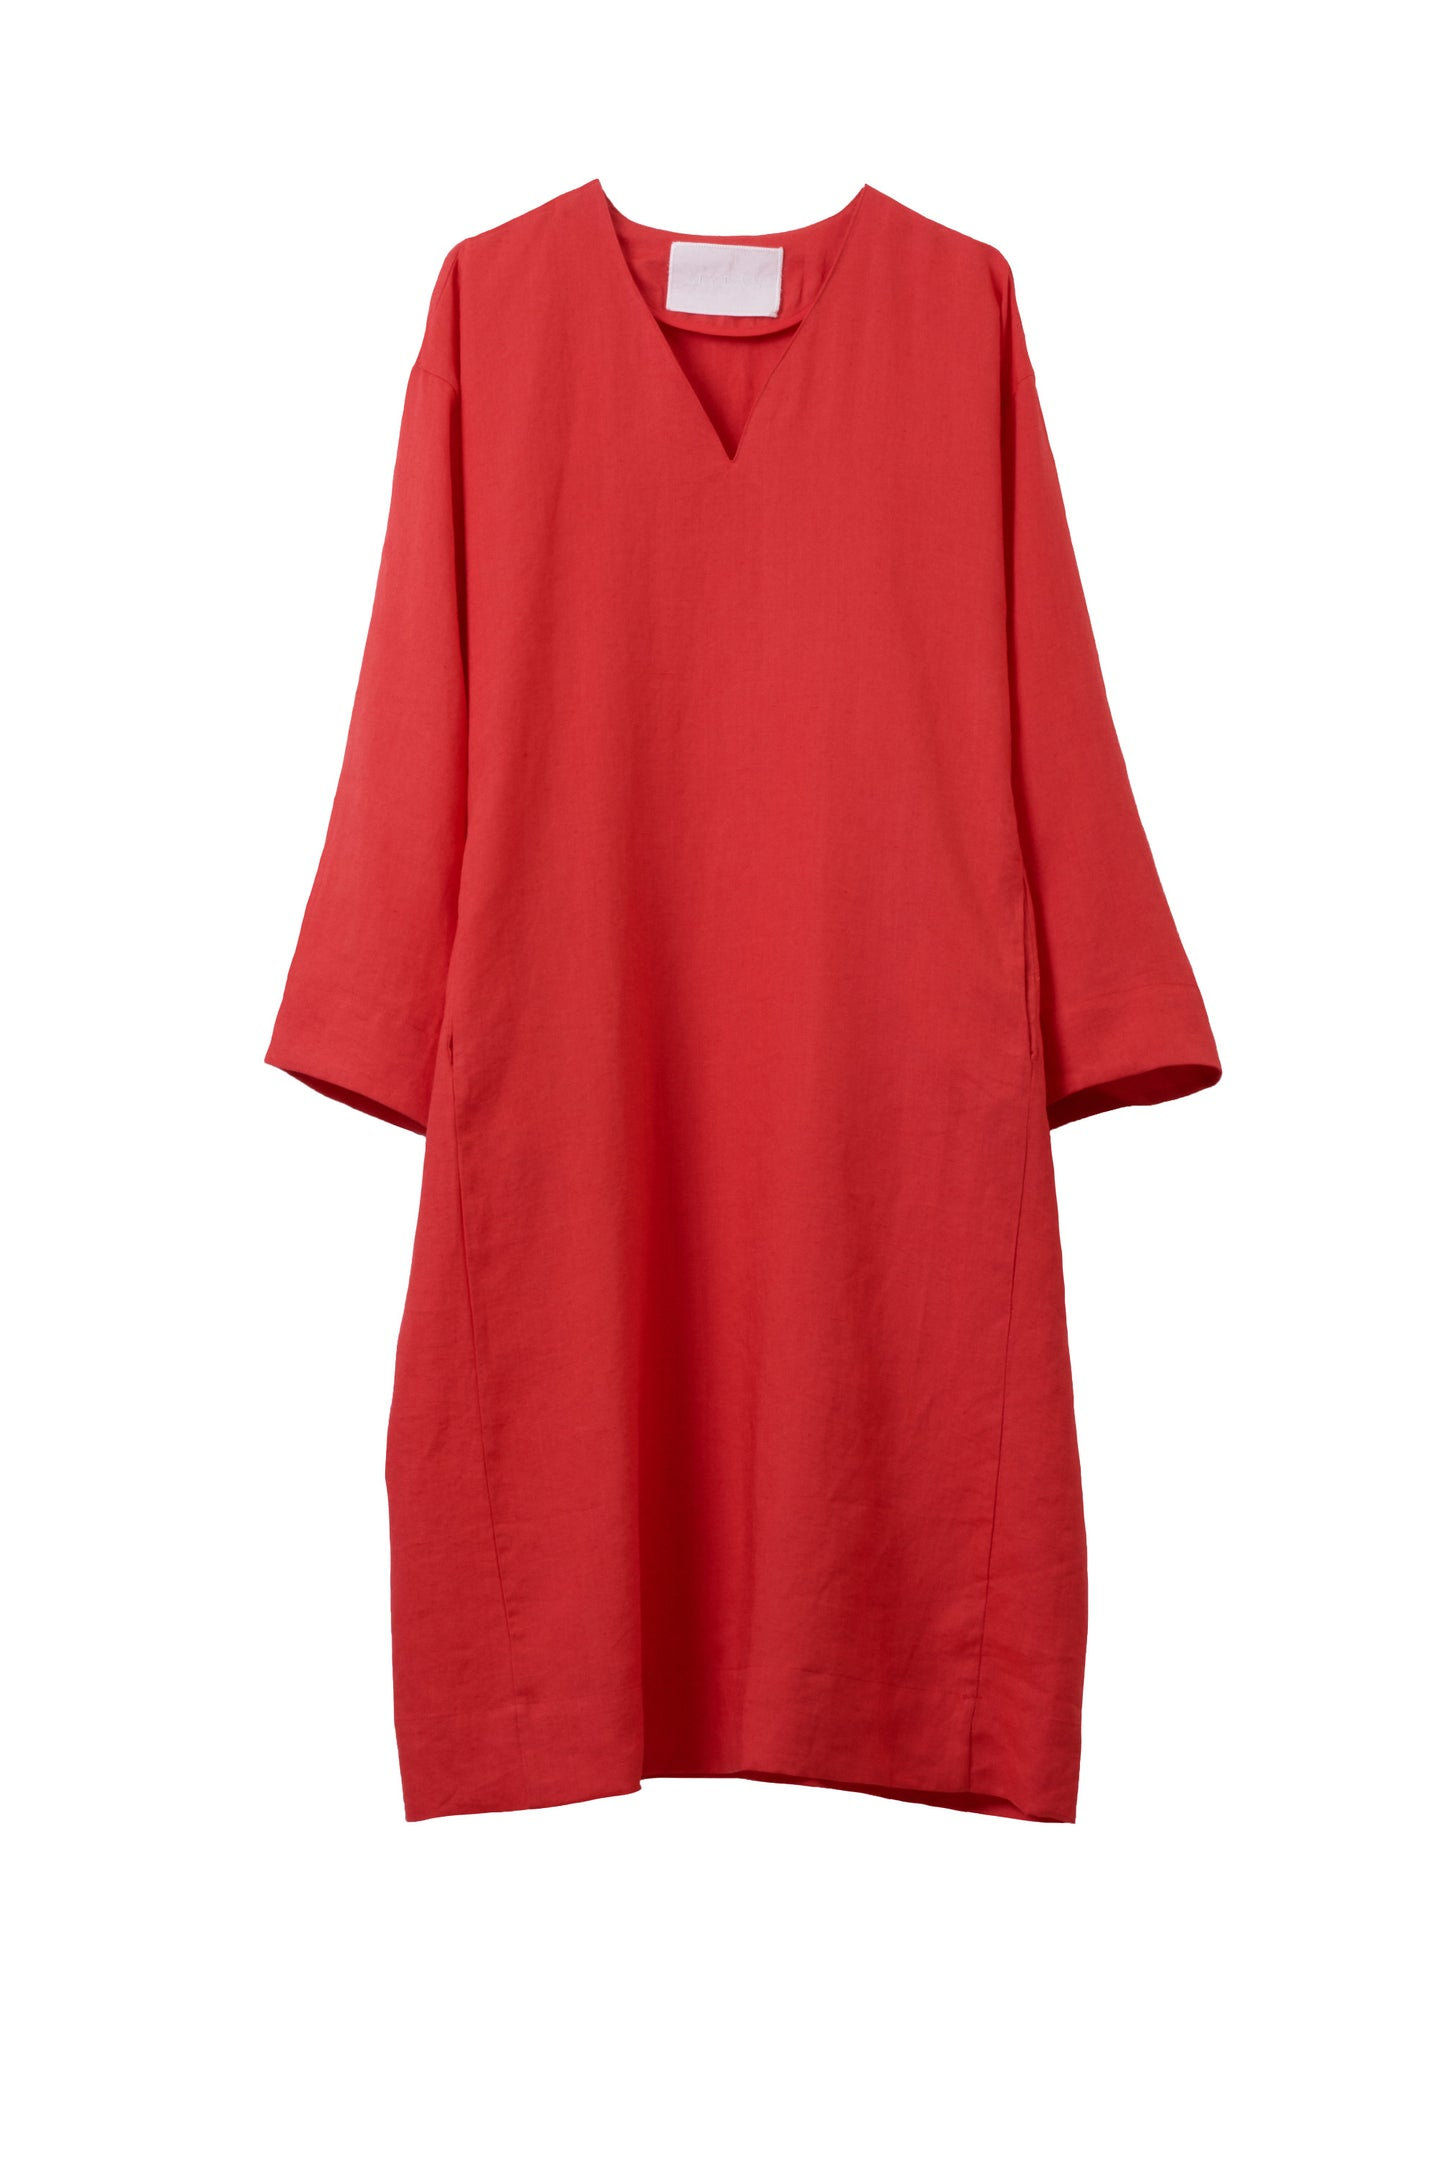 Color Linen Oversize Dress | Coral Red